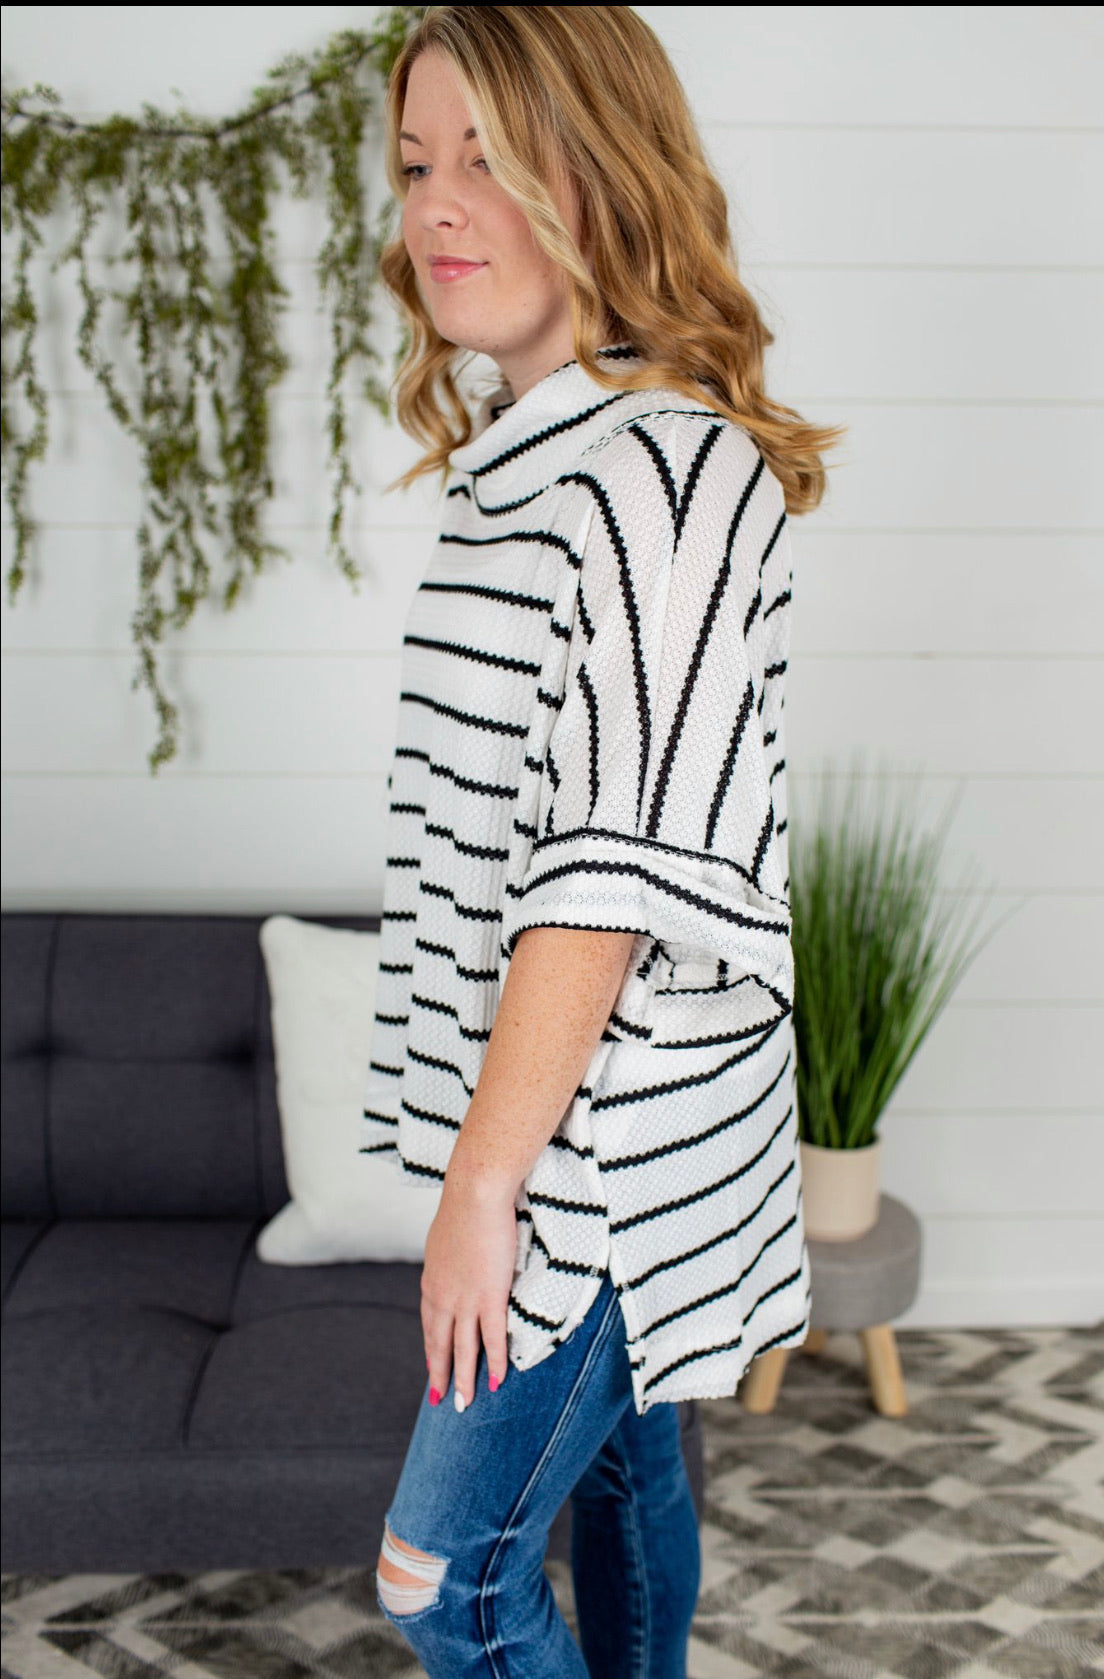 Stripe Boxy Top - Ivory/Black